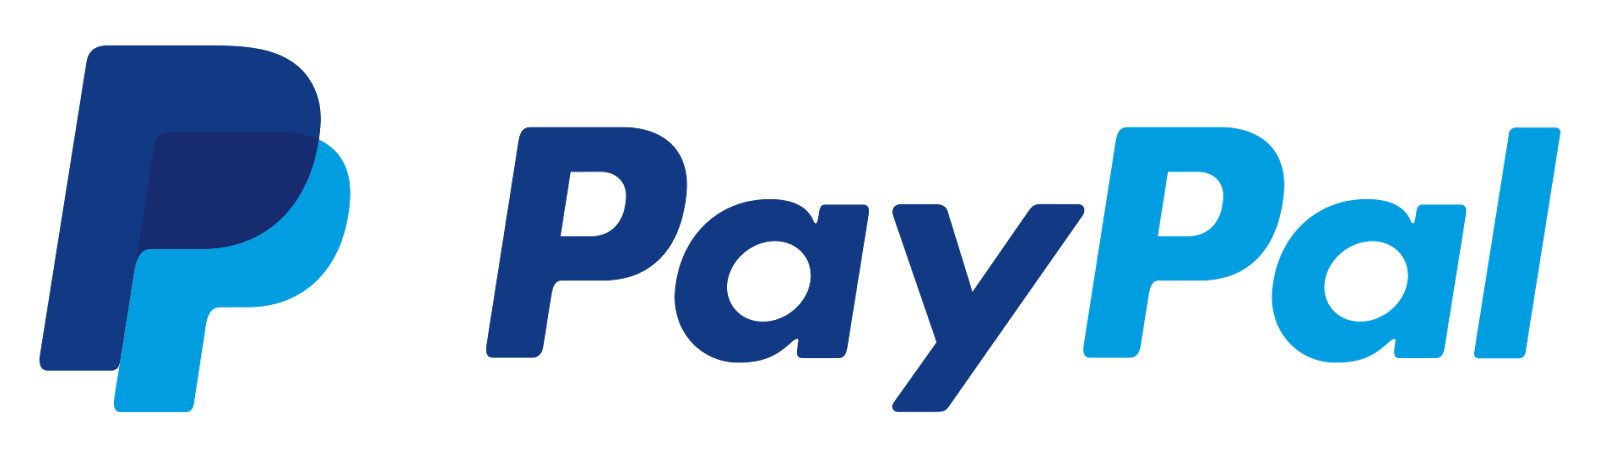 We accept payments through PayPal